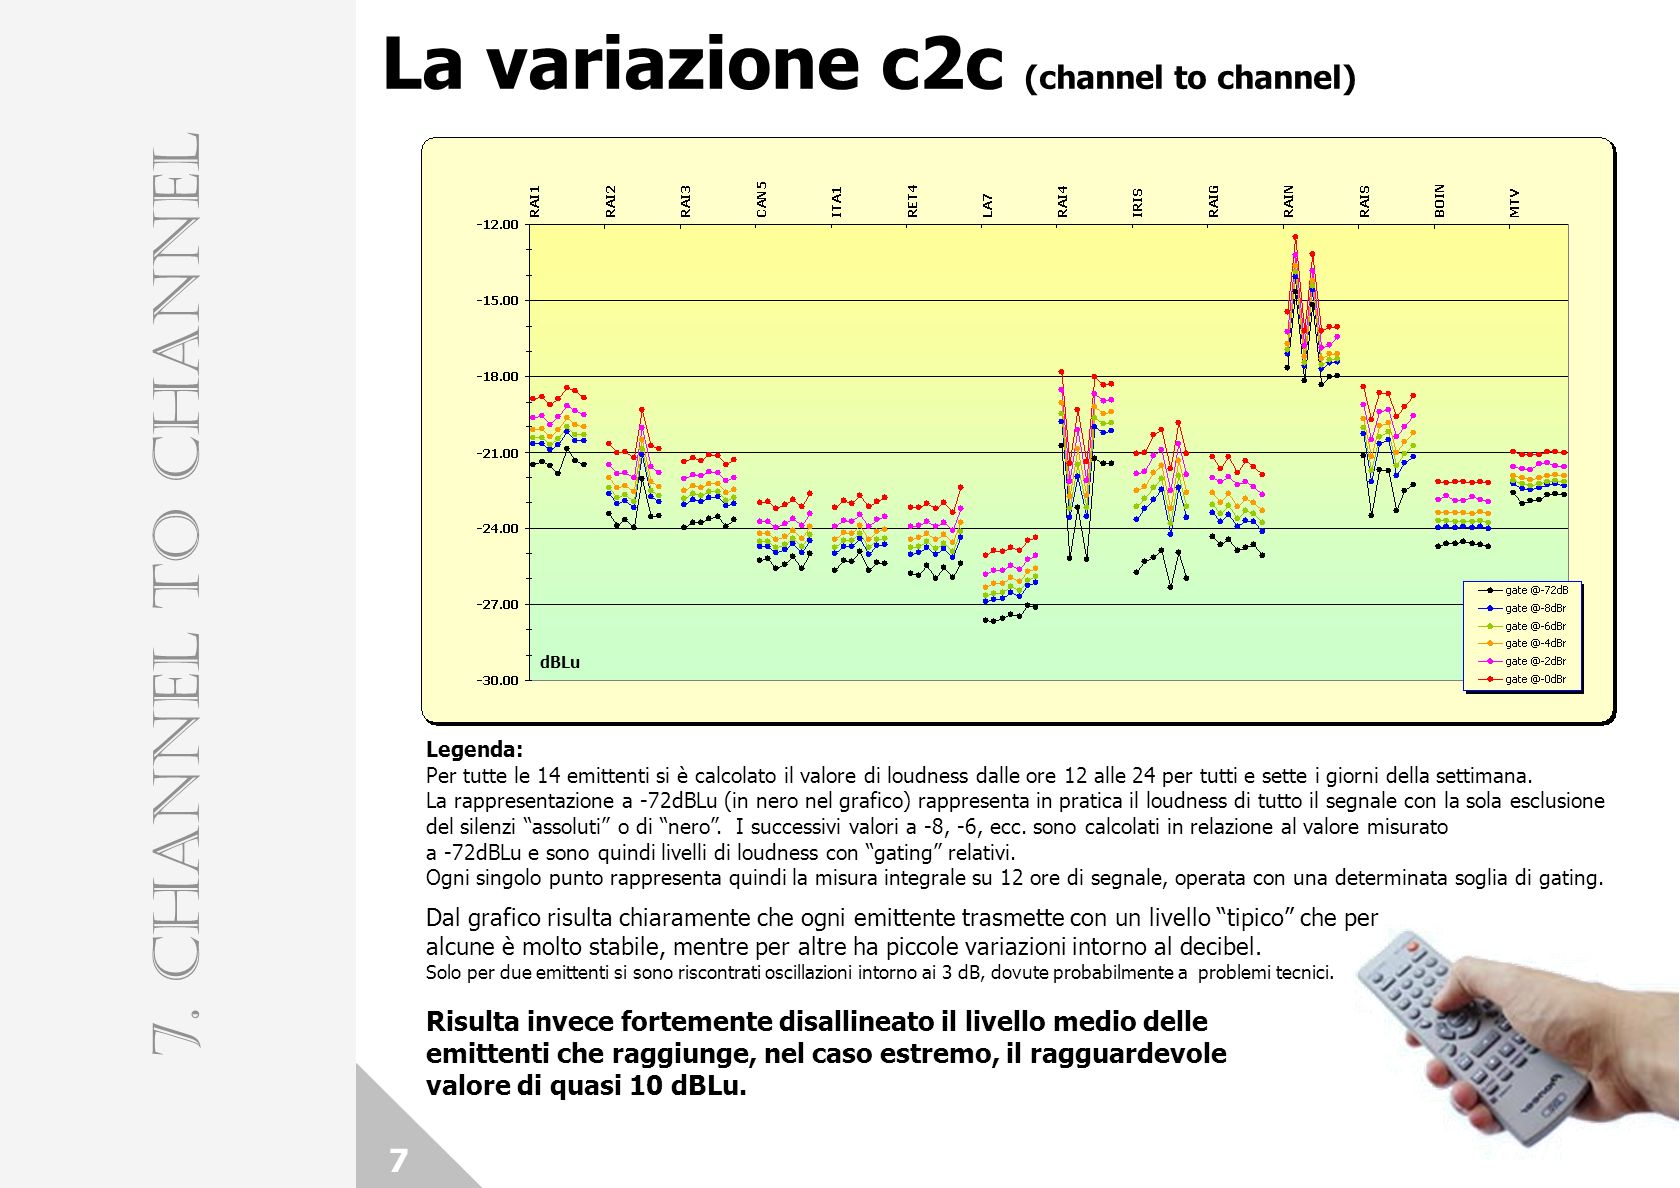 La variazione c2c (channel to channel)